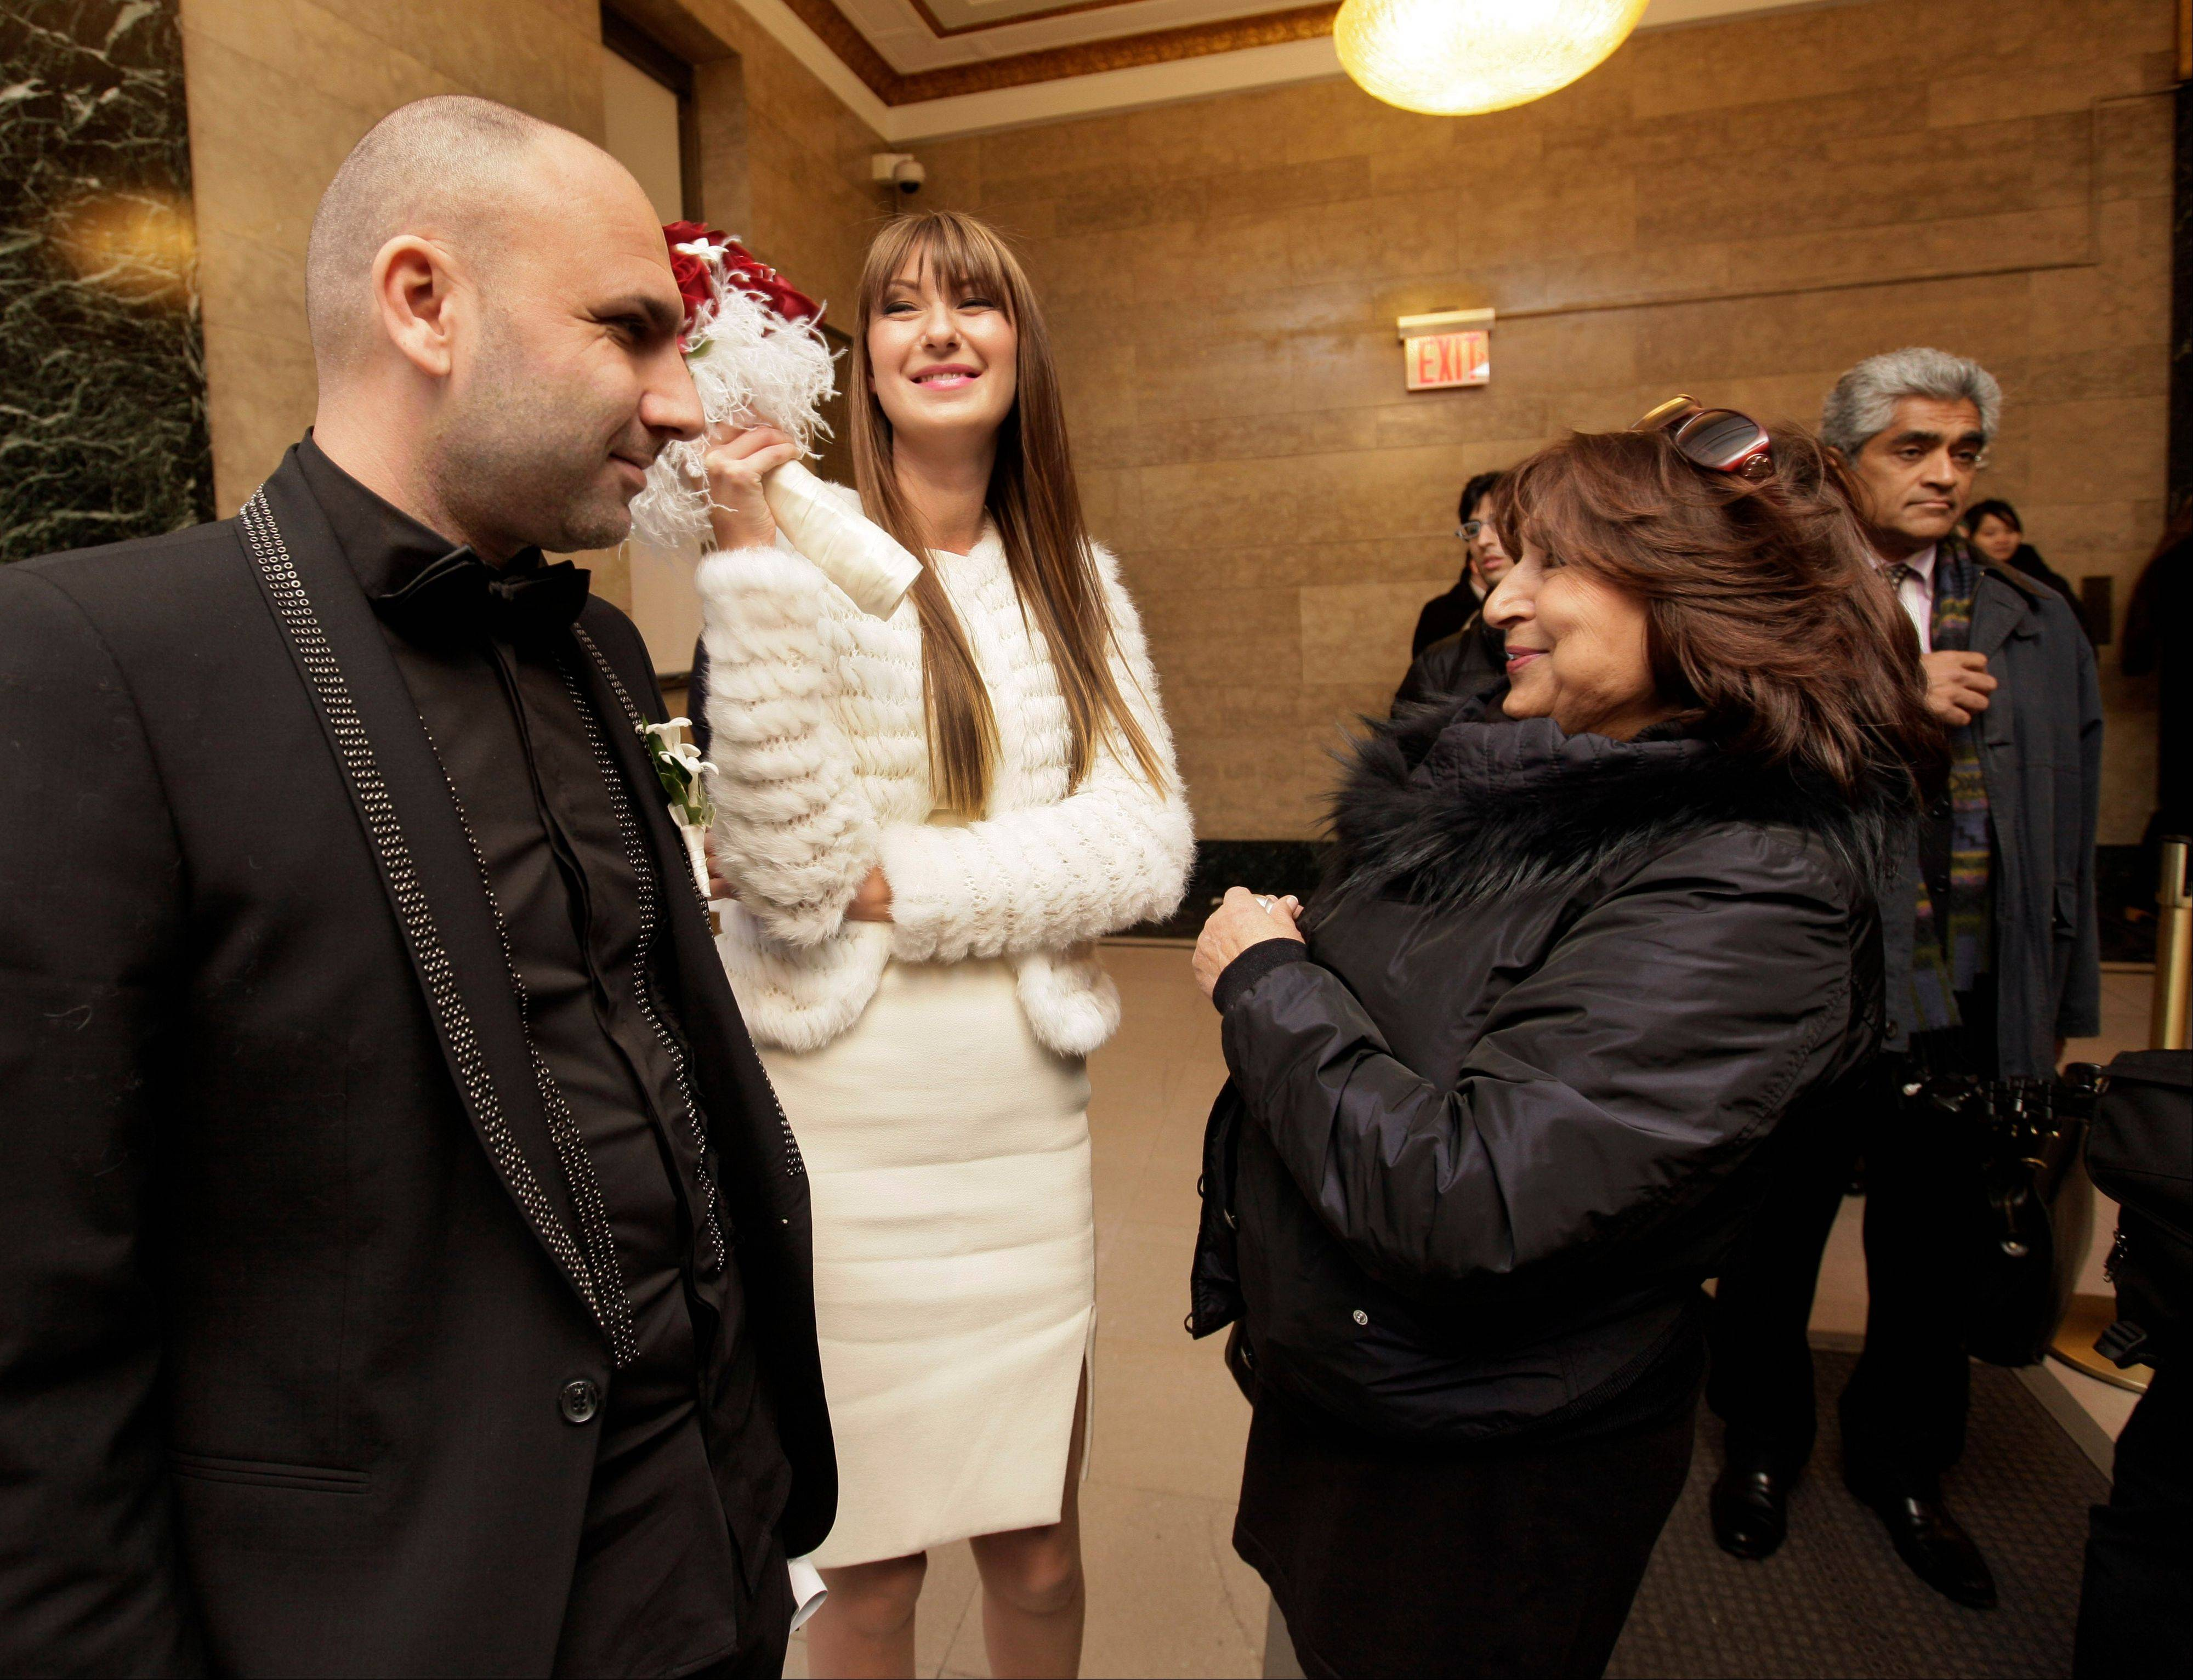 Gleb Bukin, left, and his fiancee Kate Val, of Fort Lee, N.J., center, wait Wednesday with his mother, Mila Bukin, to be married in the Office of the City Clerk in New York.